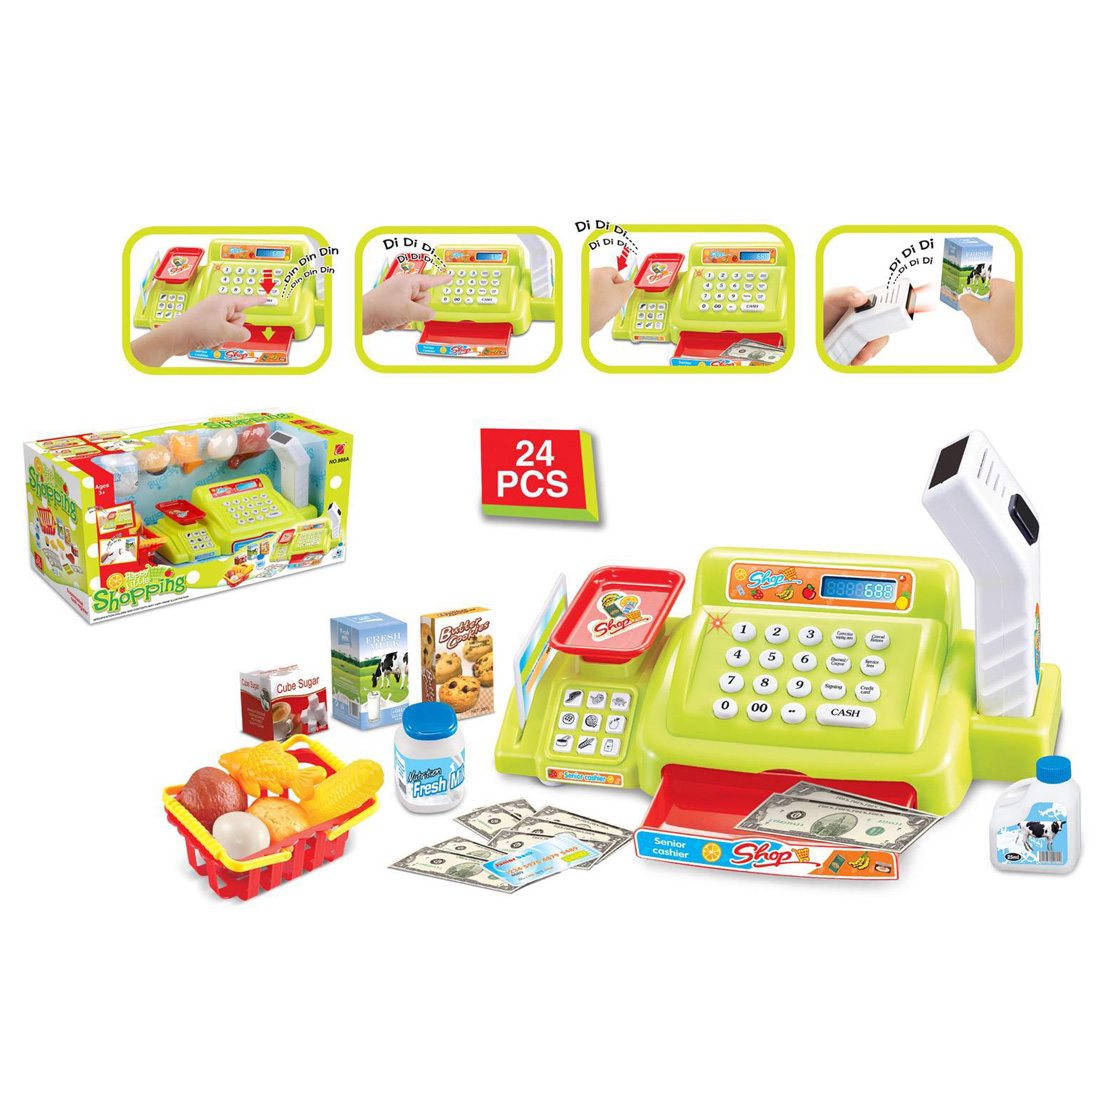 Hot 24Pcs Children Pretend Play Simulation Shopping Toy Supermarket Cash Register Playset Children Early Educational Toy - Green